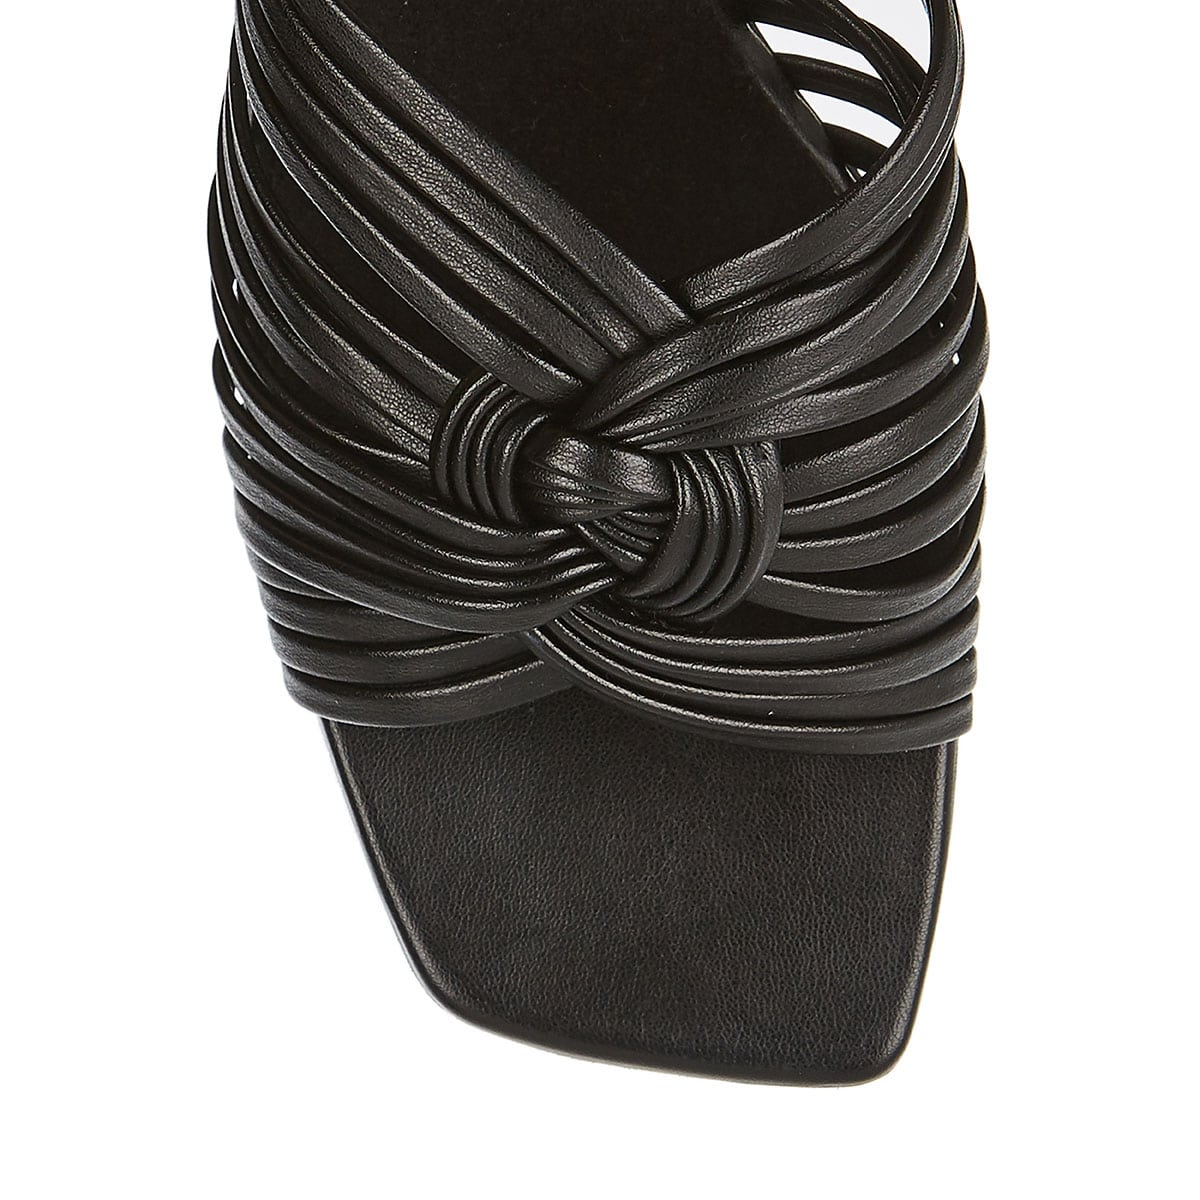 Mules with interlaced knotted straps